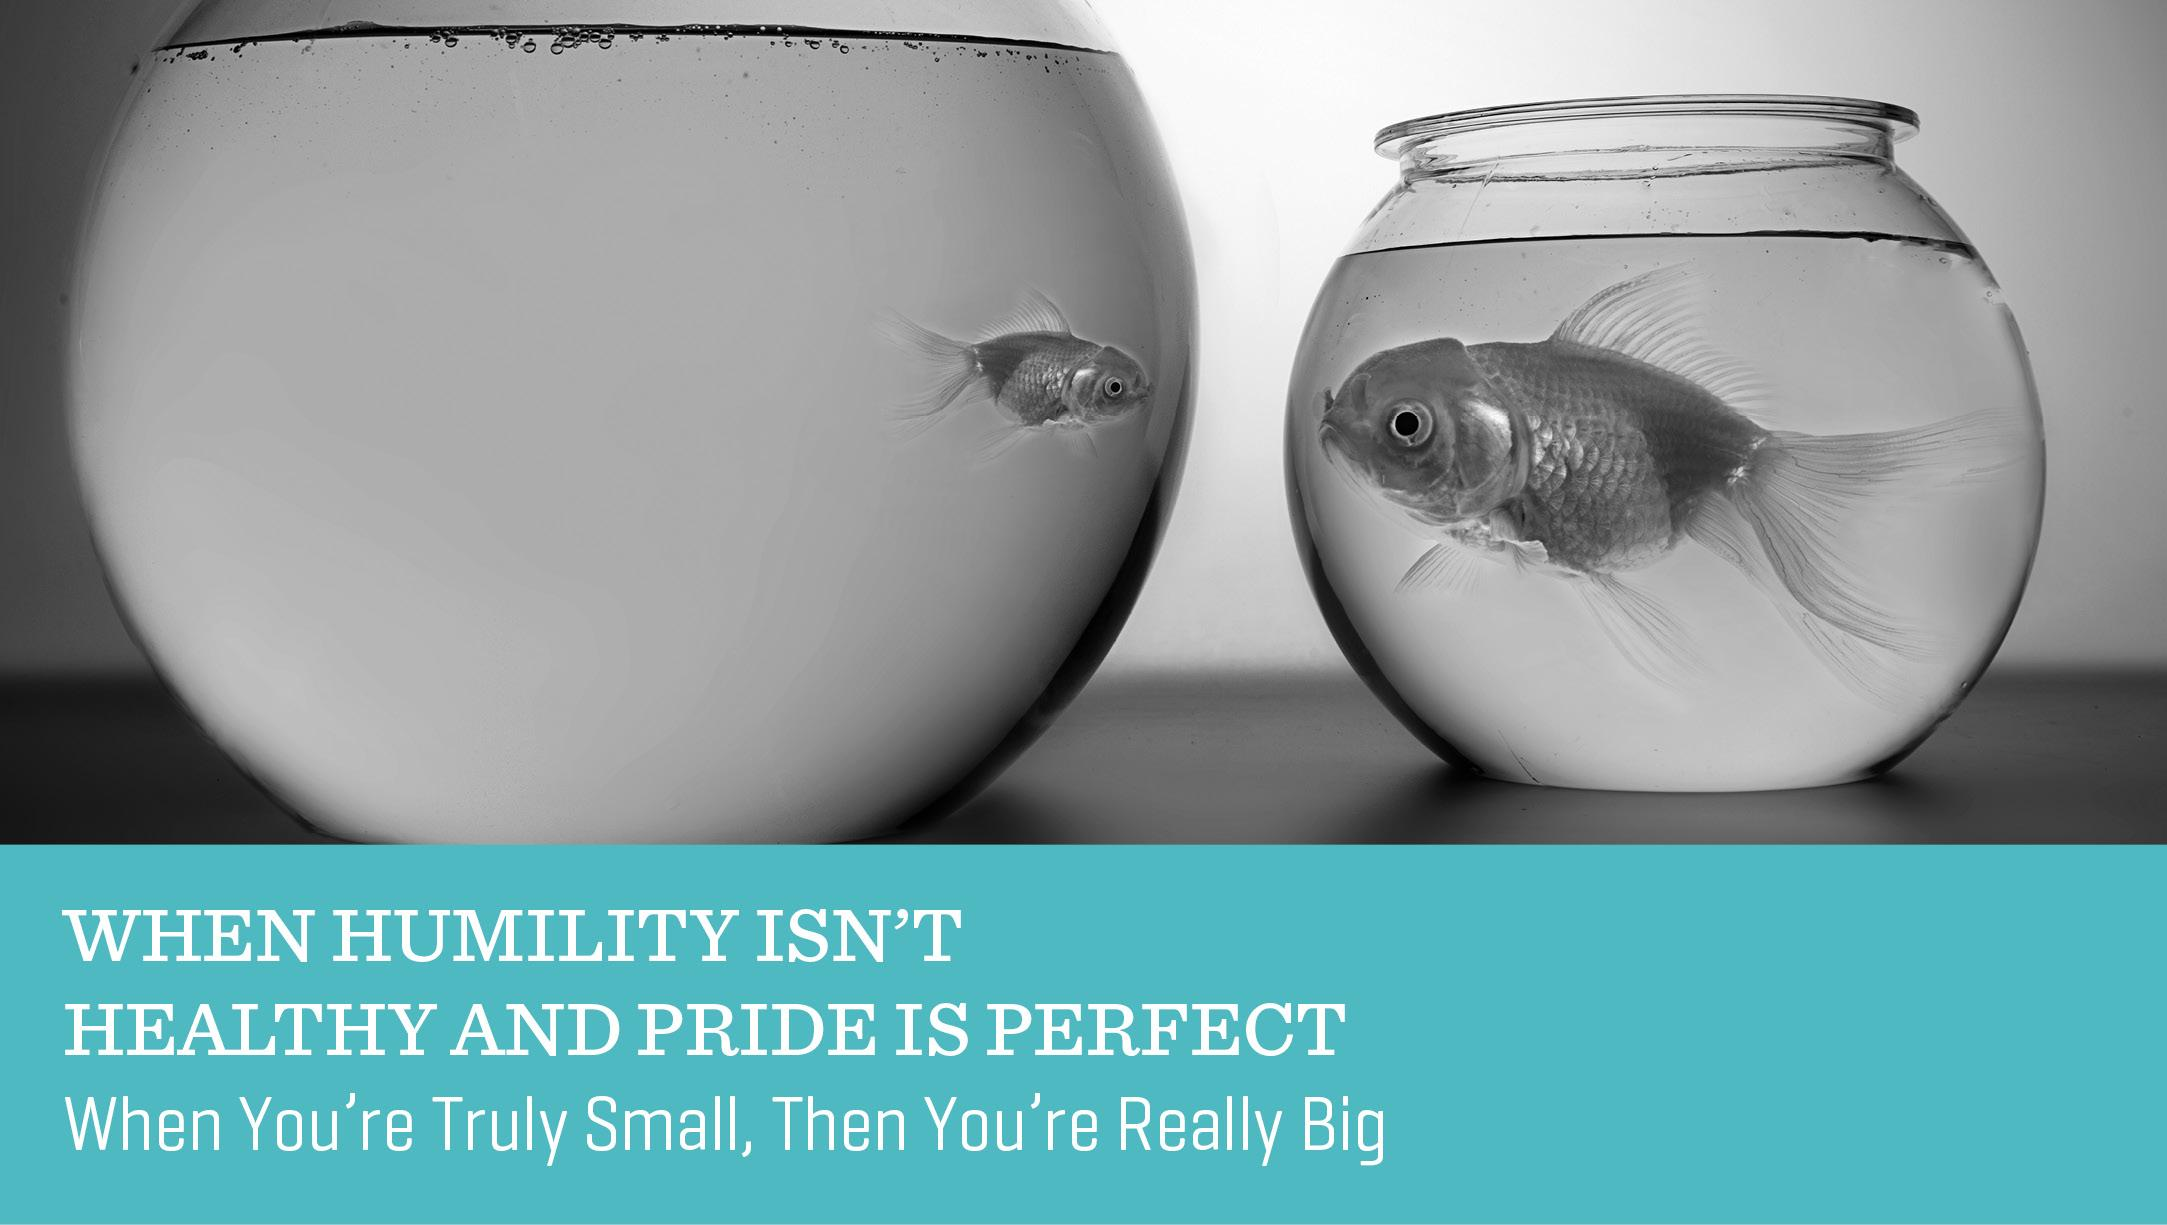 When Humility Isn't Healthy and Pride Is Perfect